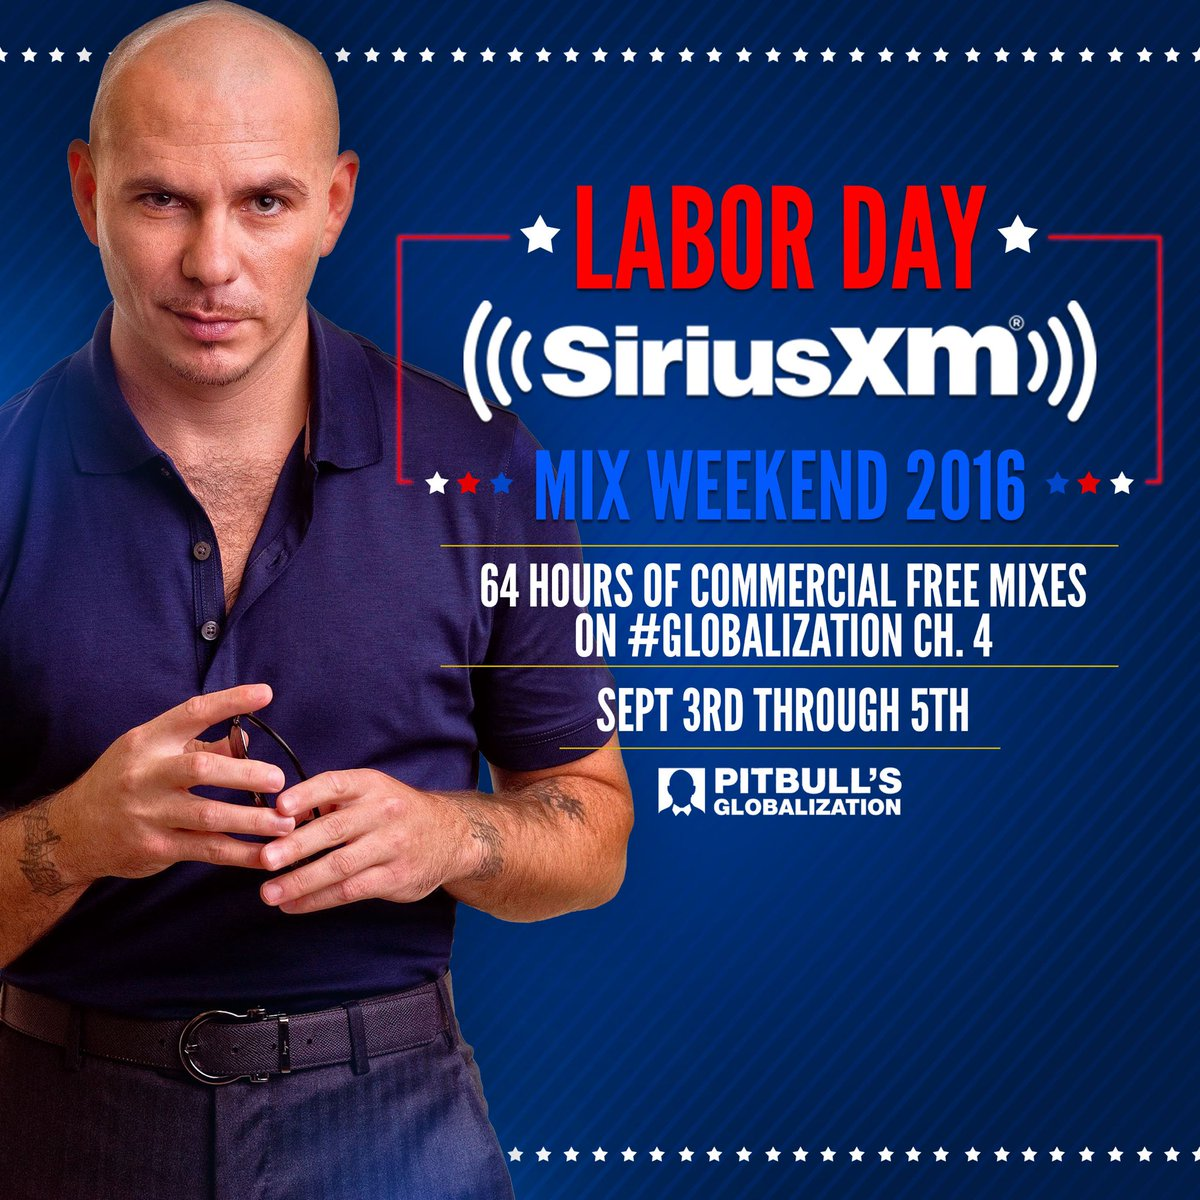 Listen for free to my #Globalization channel on @SIRIUSXM this Labor Day Weekend #Dale https://t.co/skbwXKsD3f https://t.co/VSXdz1ozdz